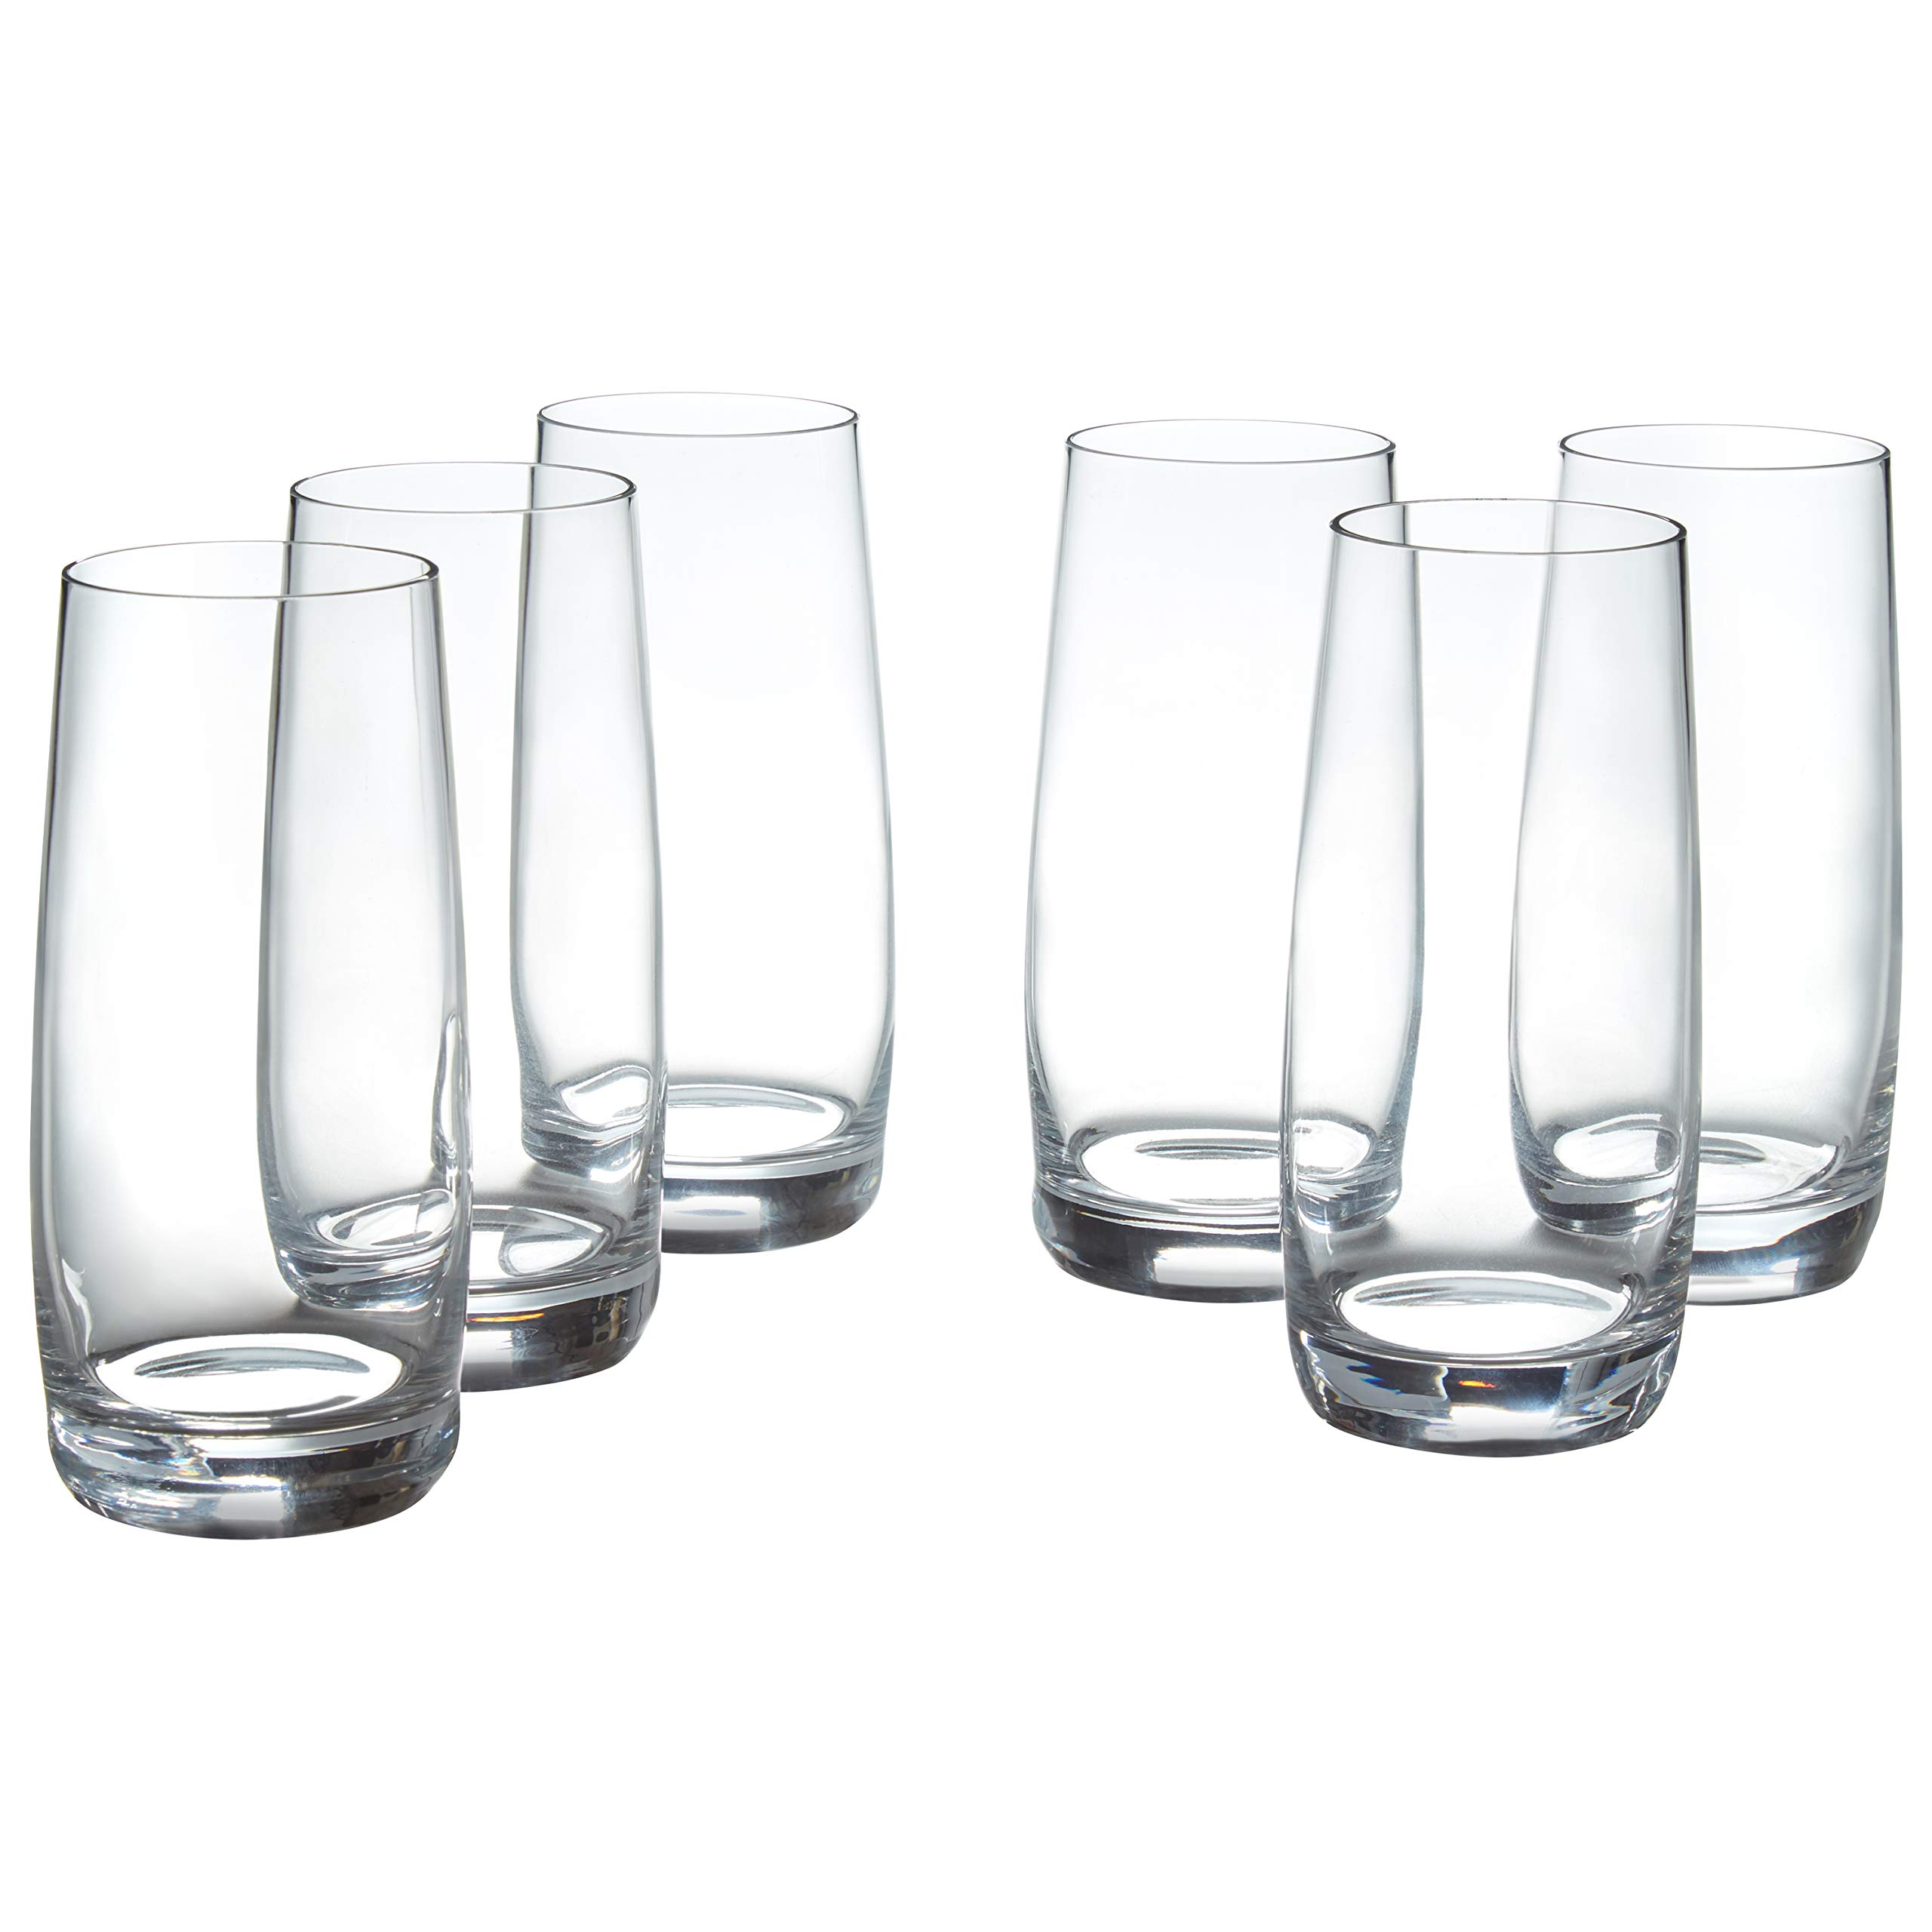 Stone & Beam Traditional HighBall Drinking Glass, 16-Ounce, Set of 6 by Stone & Beam